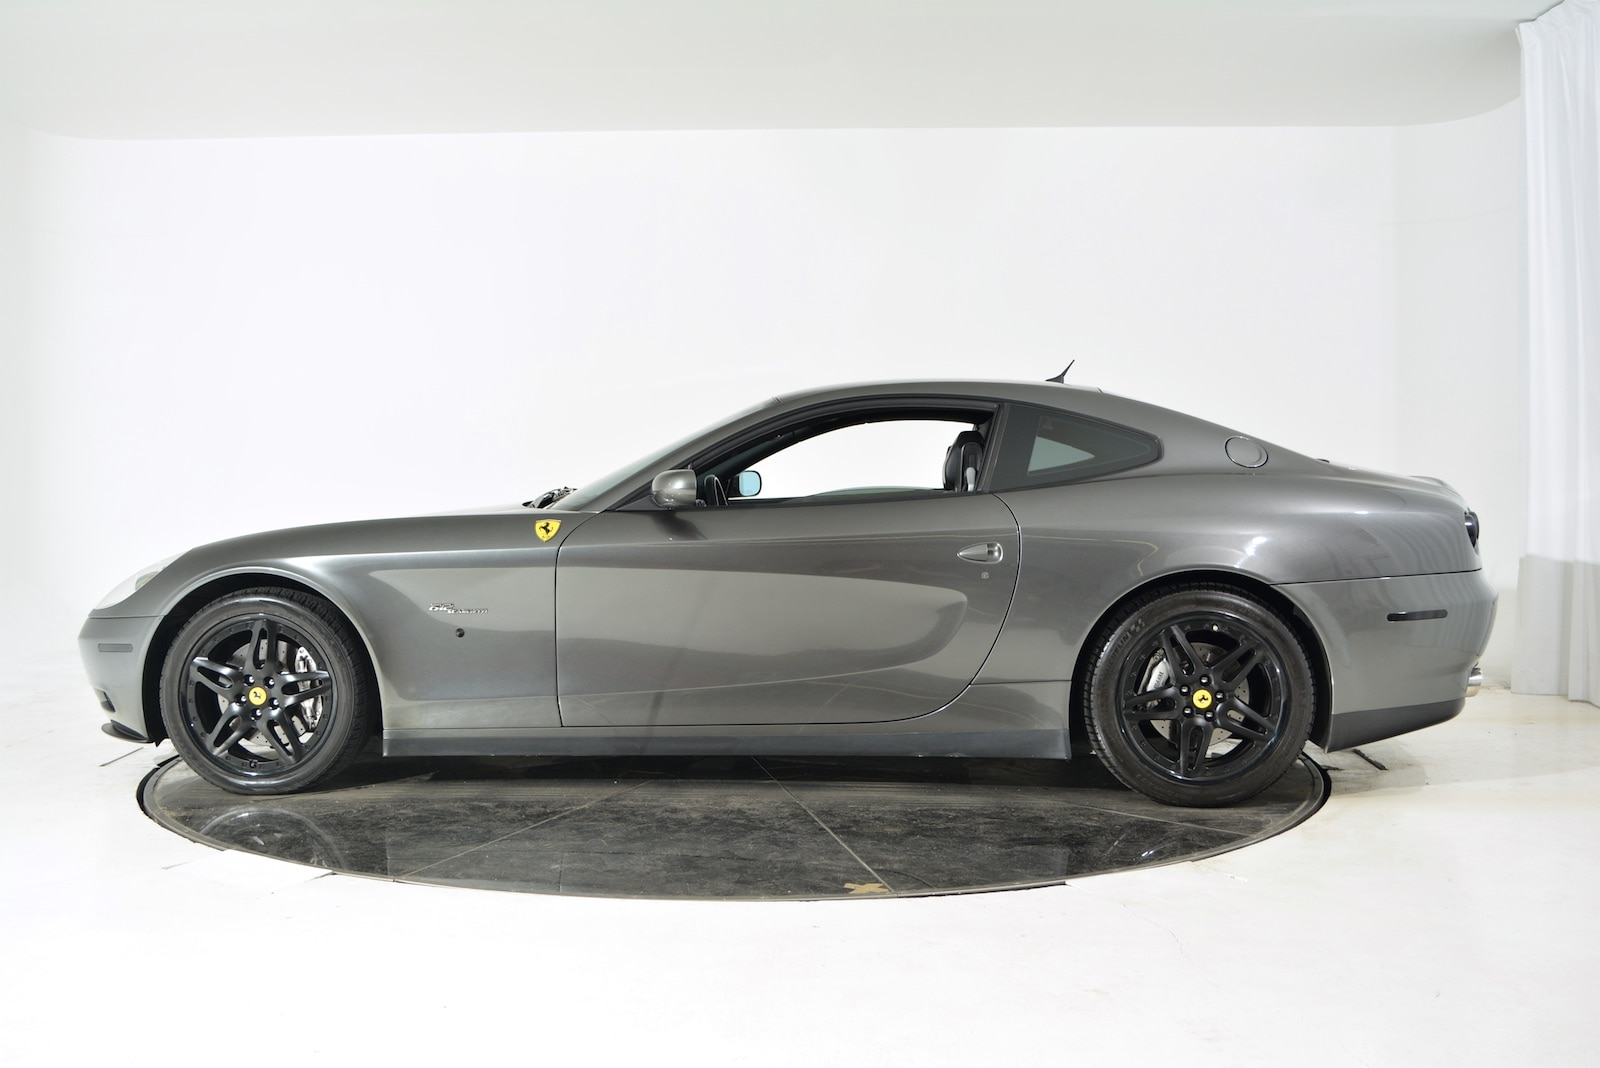 used 2006 ferrari 612 scaglietti f1 for sale fort lauderdale fl. Black Bedroom Furniture Sets. Home Design Ideas